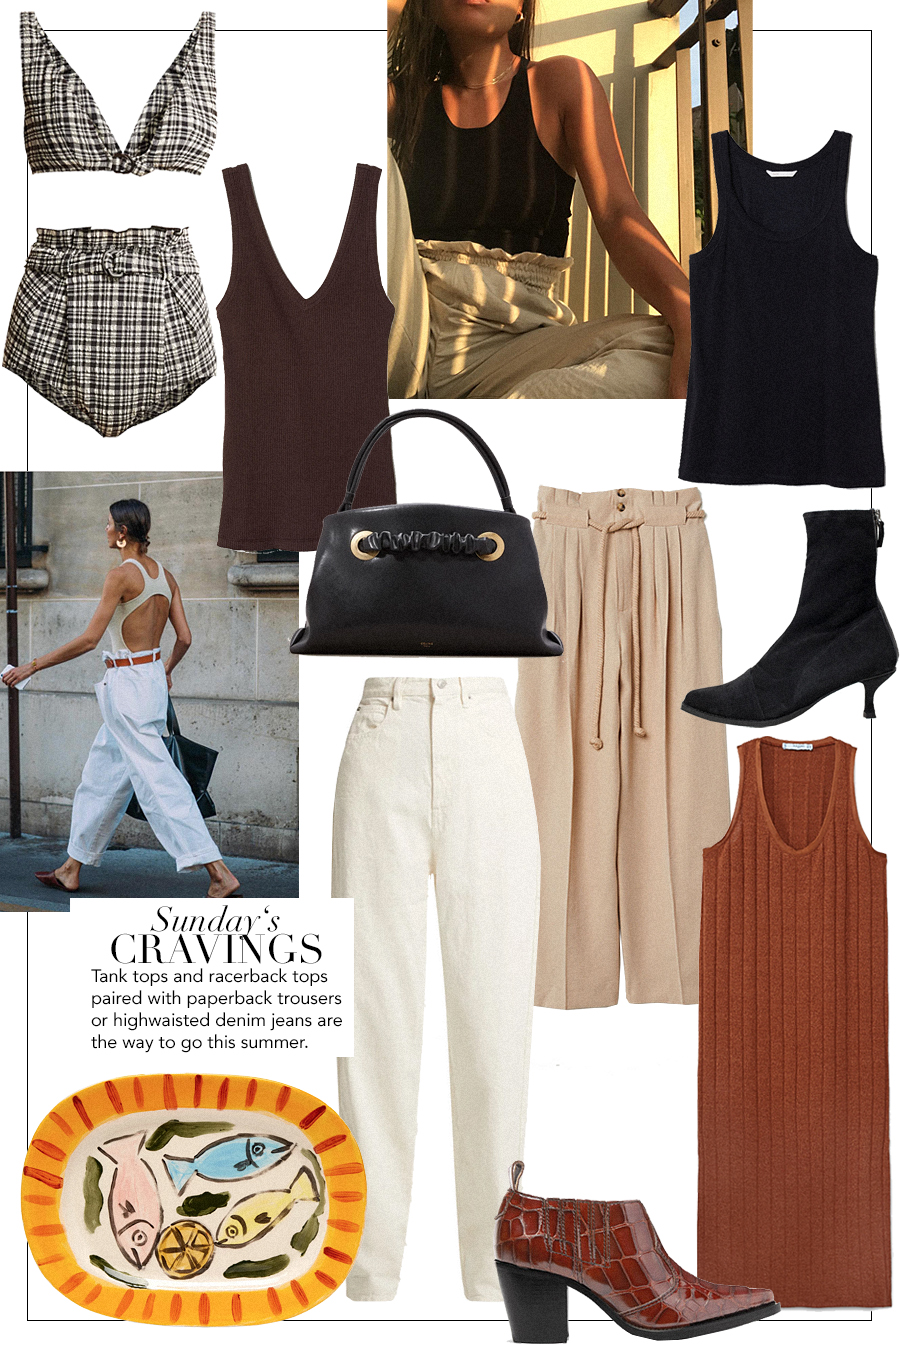 Céline Purse bag, Lisa Marie Fernandez Bikini set, H&M Brown and black tank top, Edited x Maja Wyh suede boots, Isabel Marant Étoile White denim jeans, Luke Edward Hall Serving plater, H&M Paperbag trousers, Mango Ripped dress, Ganni Boots